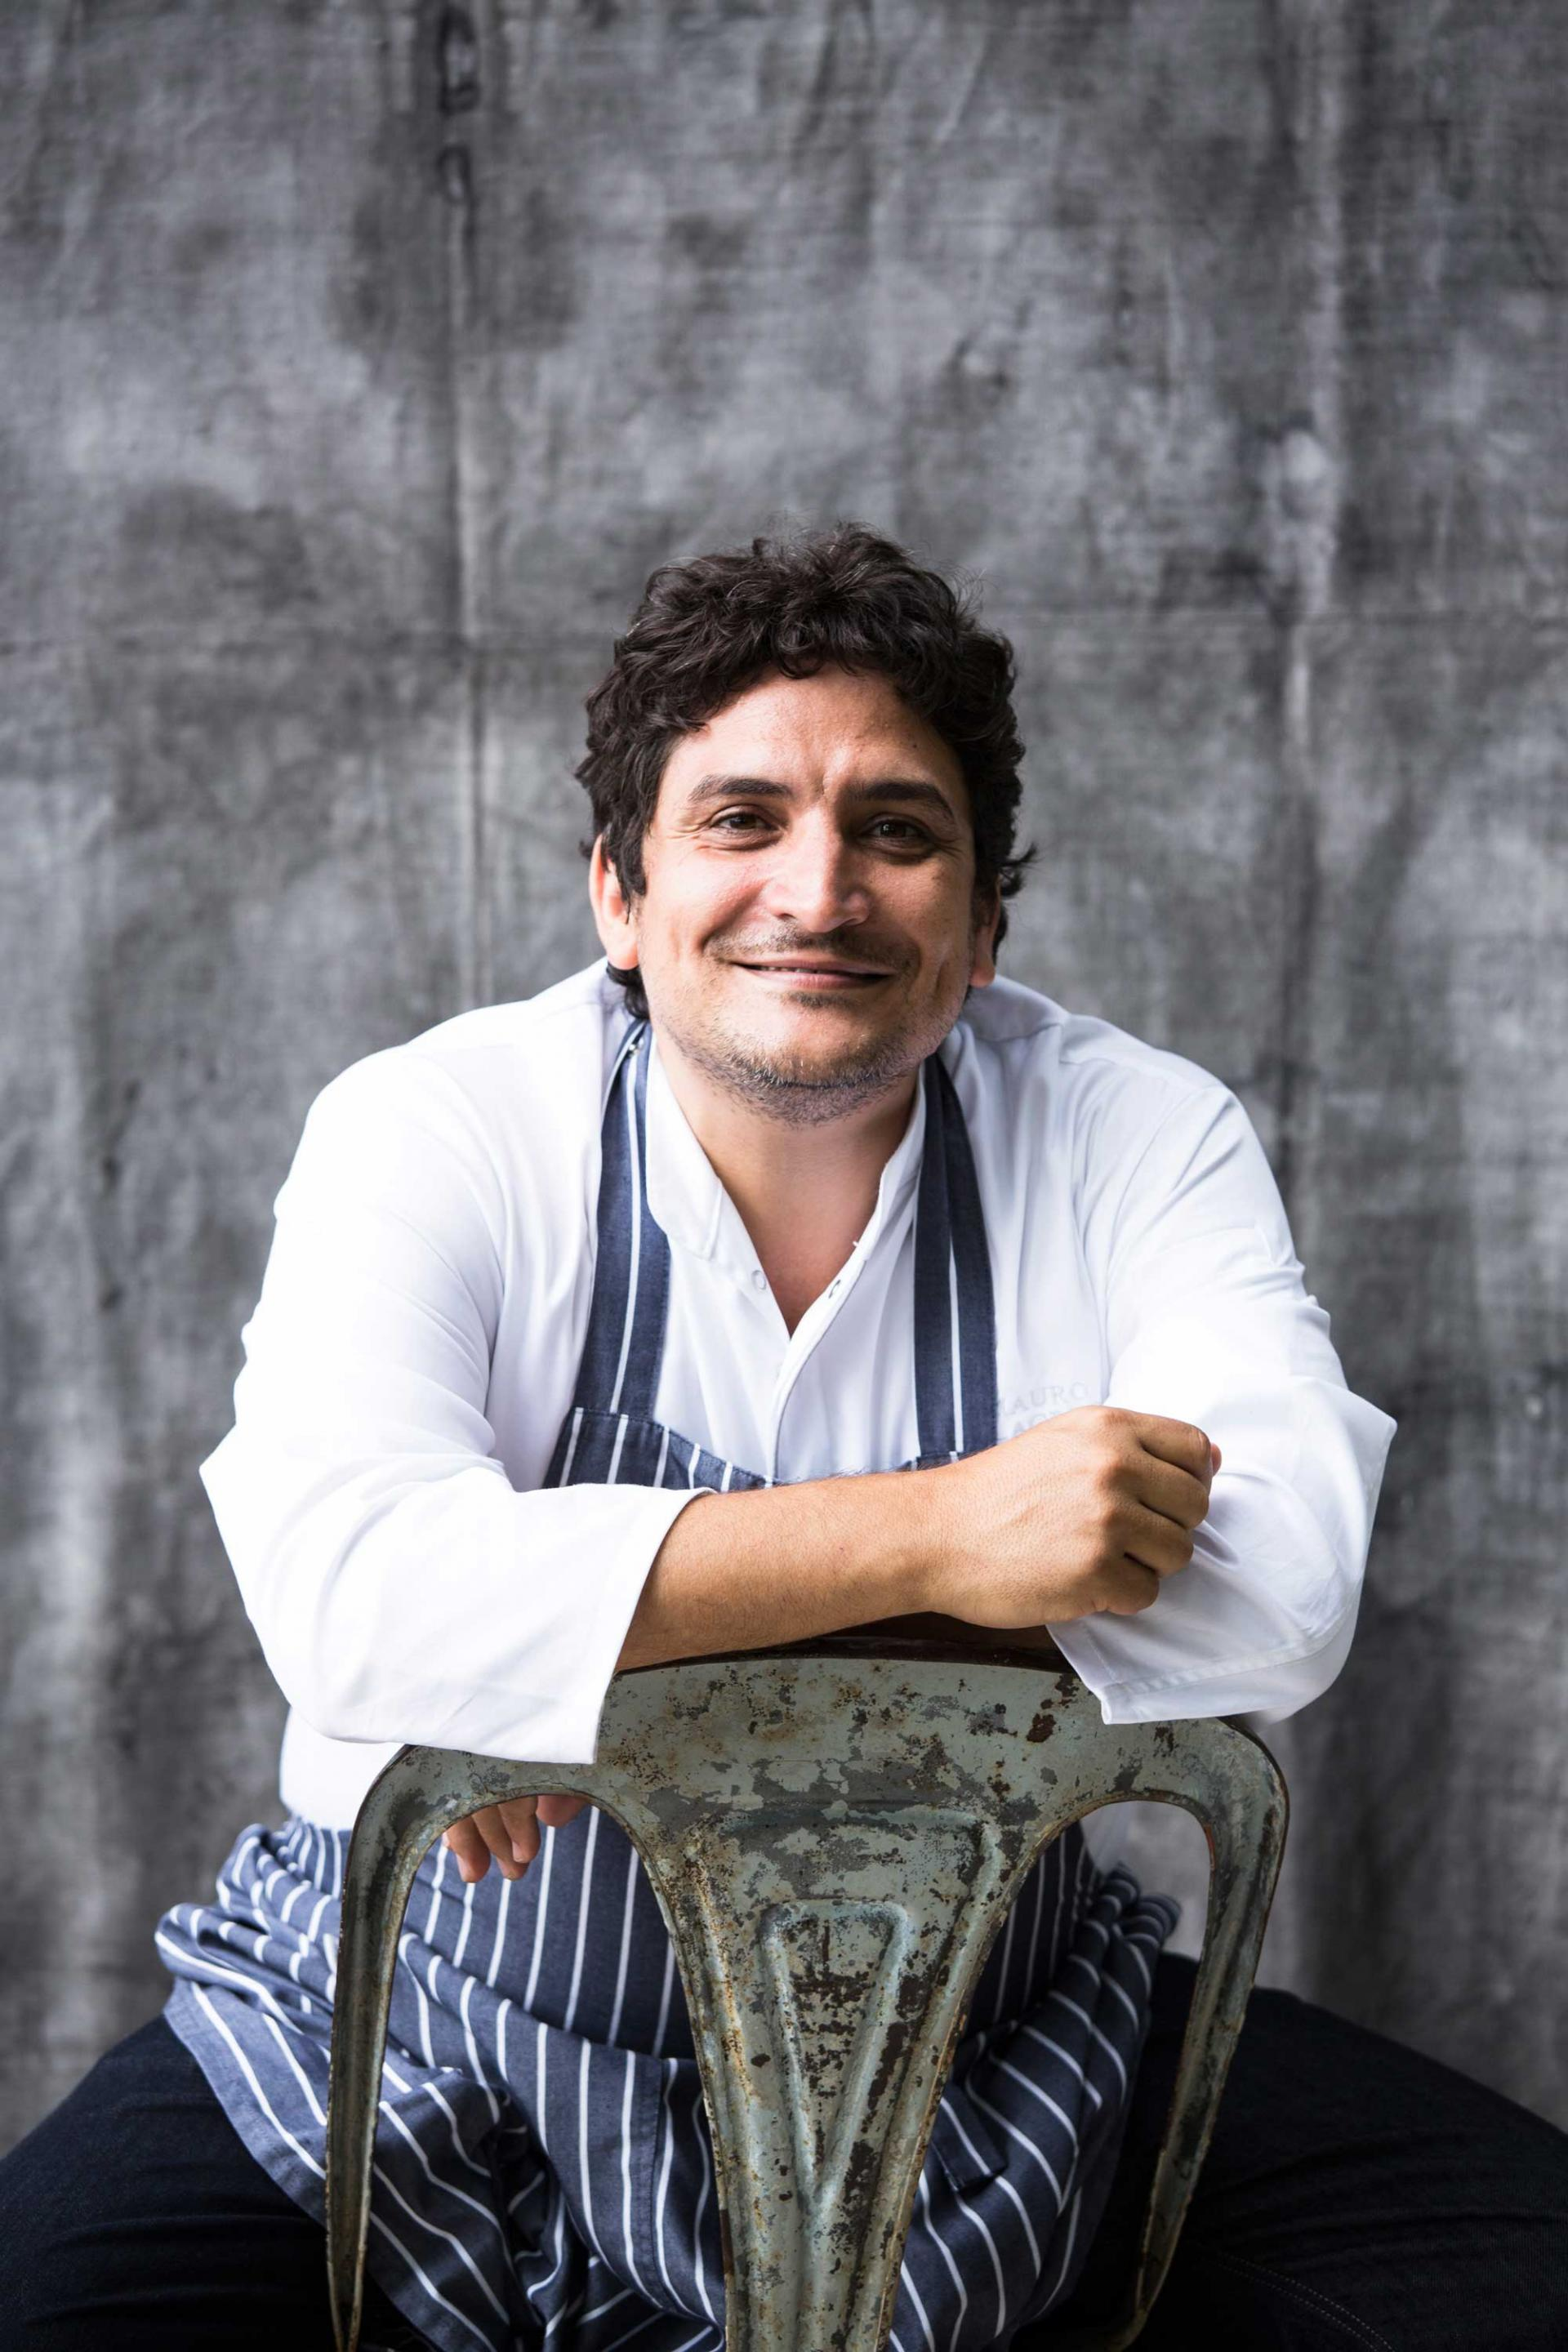 Mauro Colagreco, head chef at Mirazur